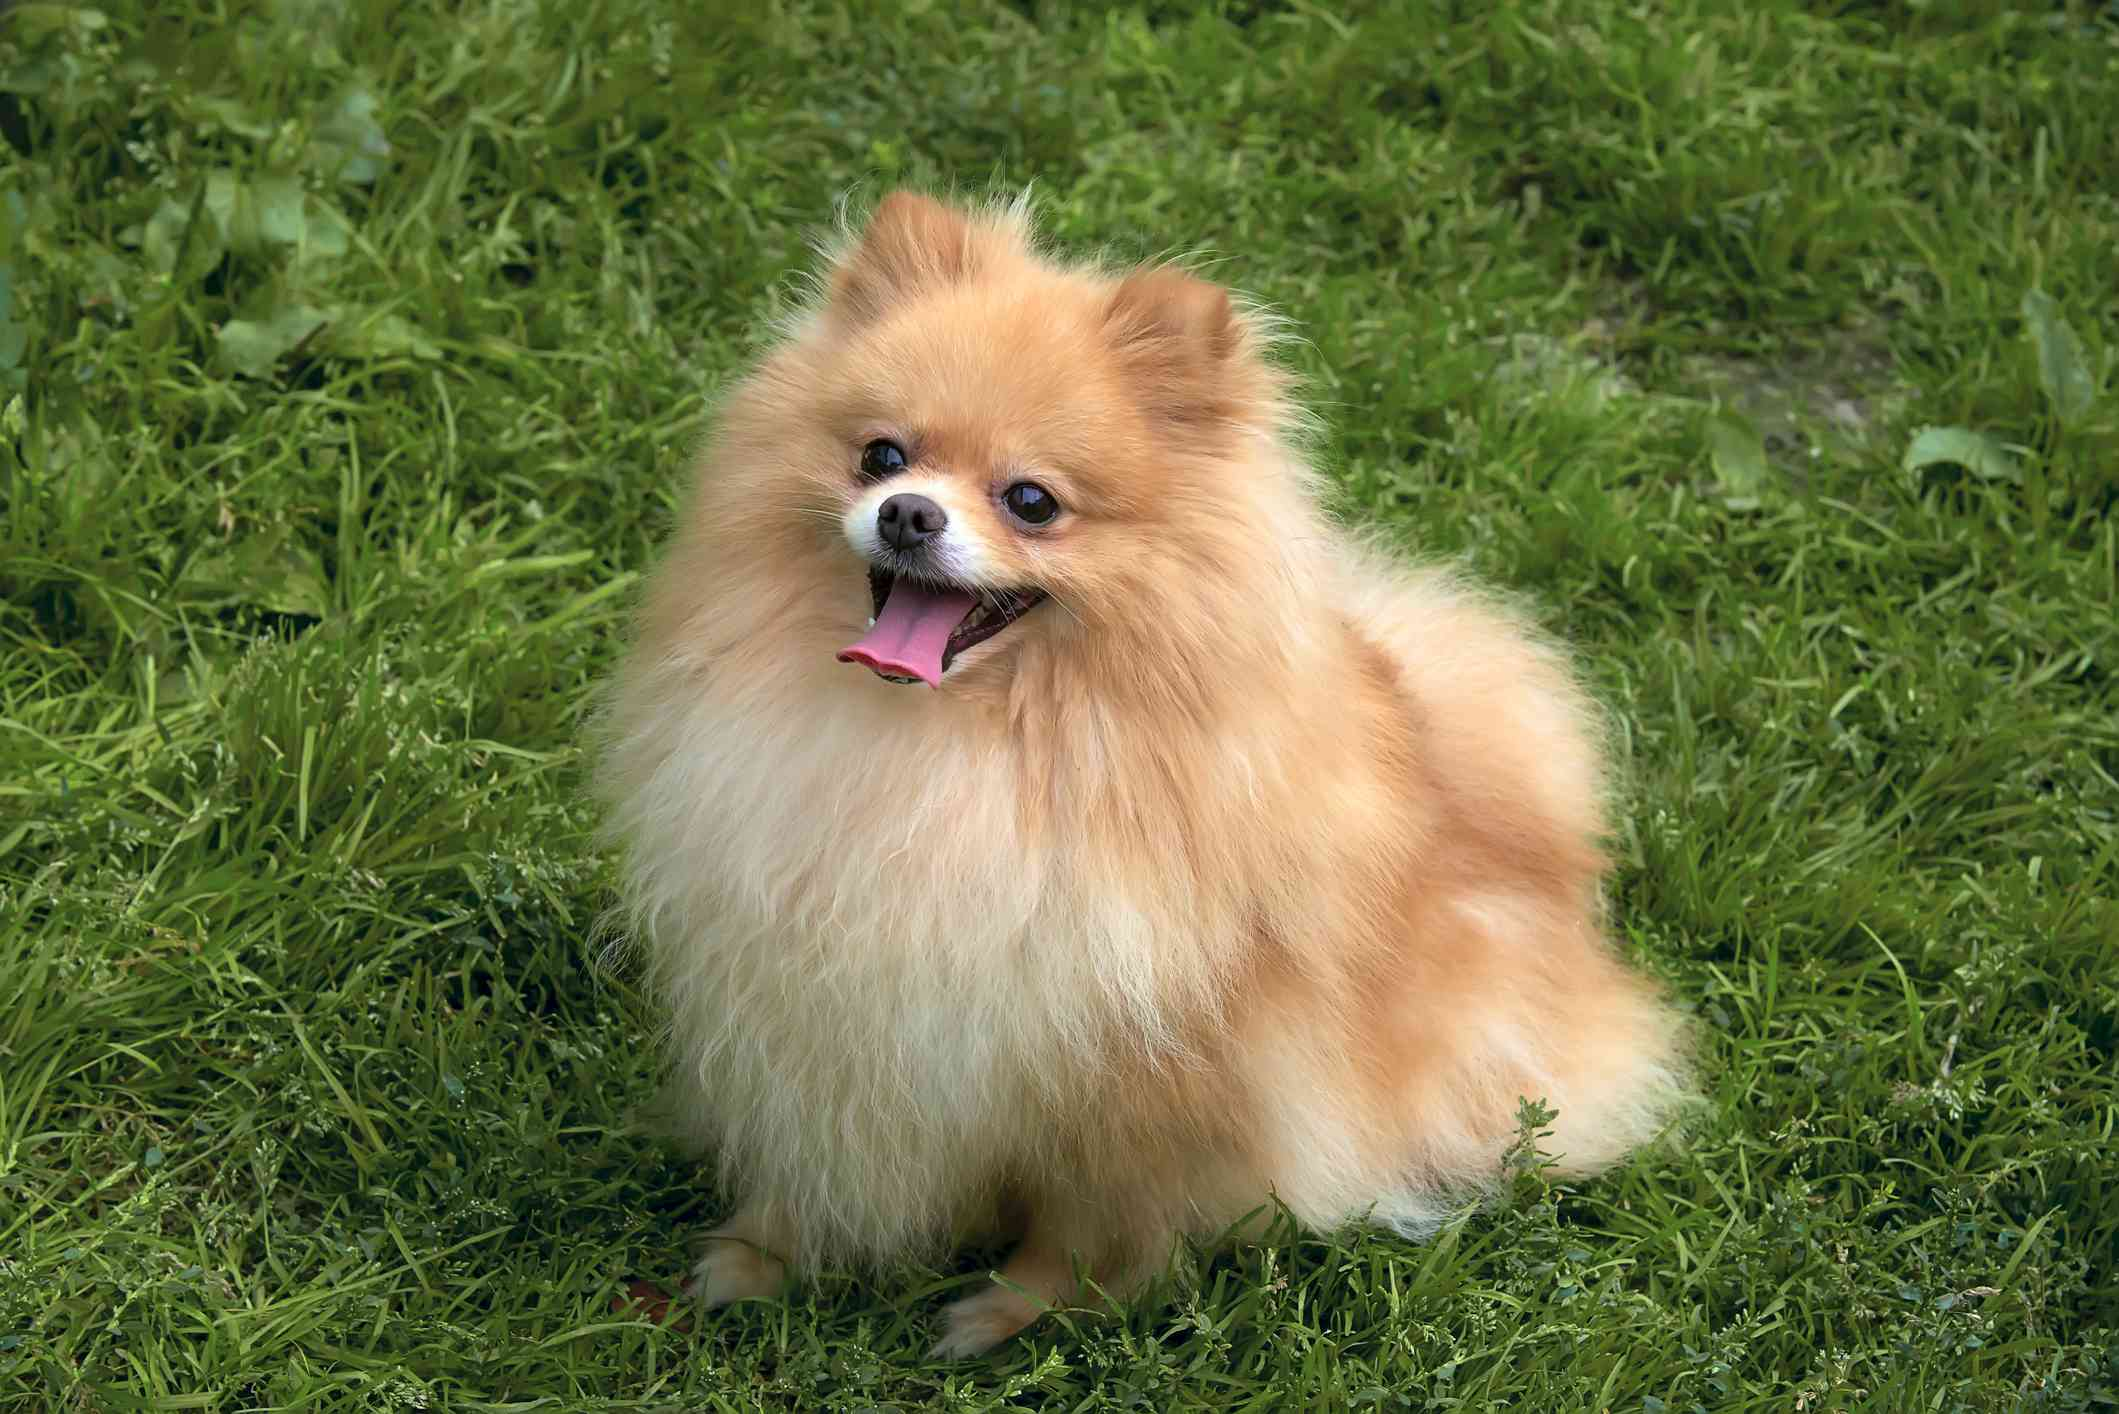 fluffy tan pomeranian sits on green grass with smiling face and tongue hanging out